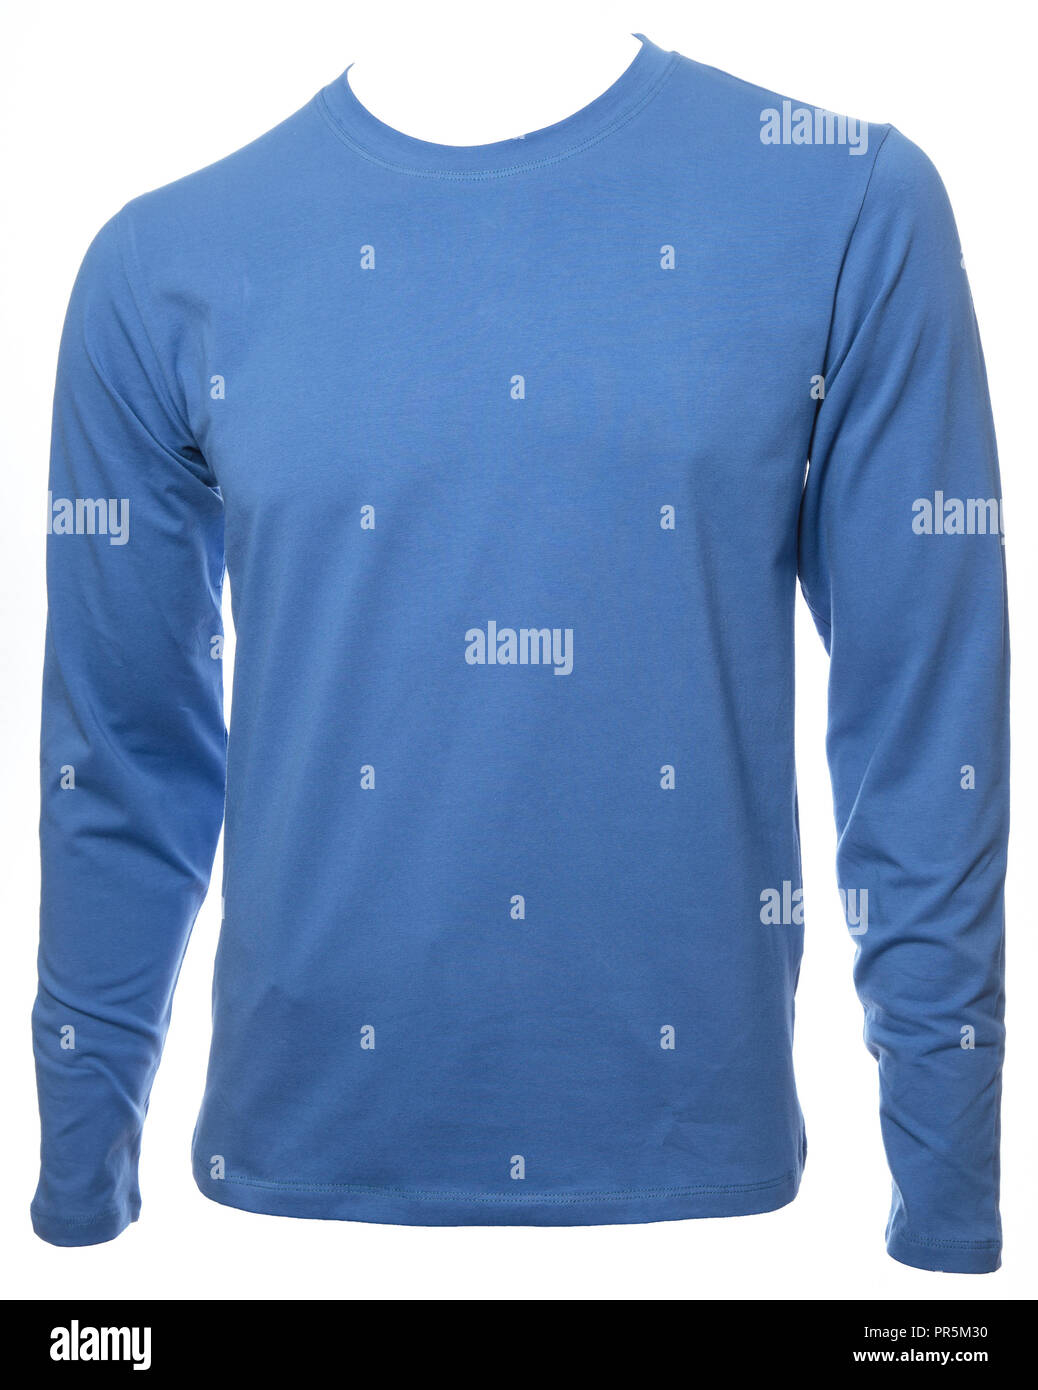 Blue Plain Long Sleeved Cotton T Shirt Template Isolated On A White